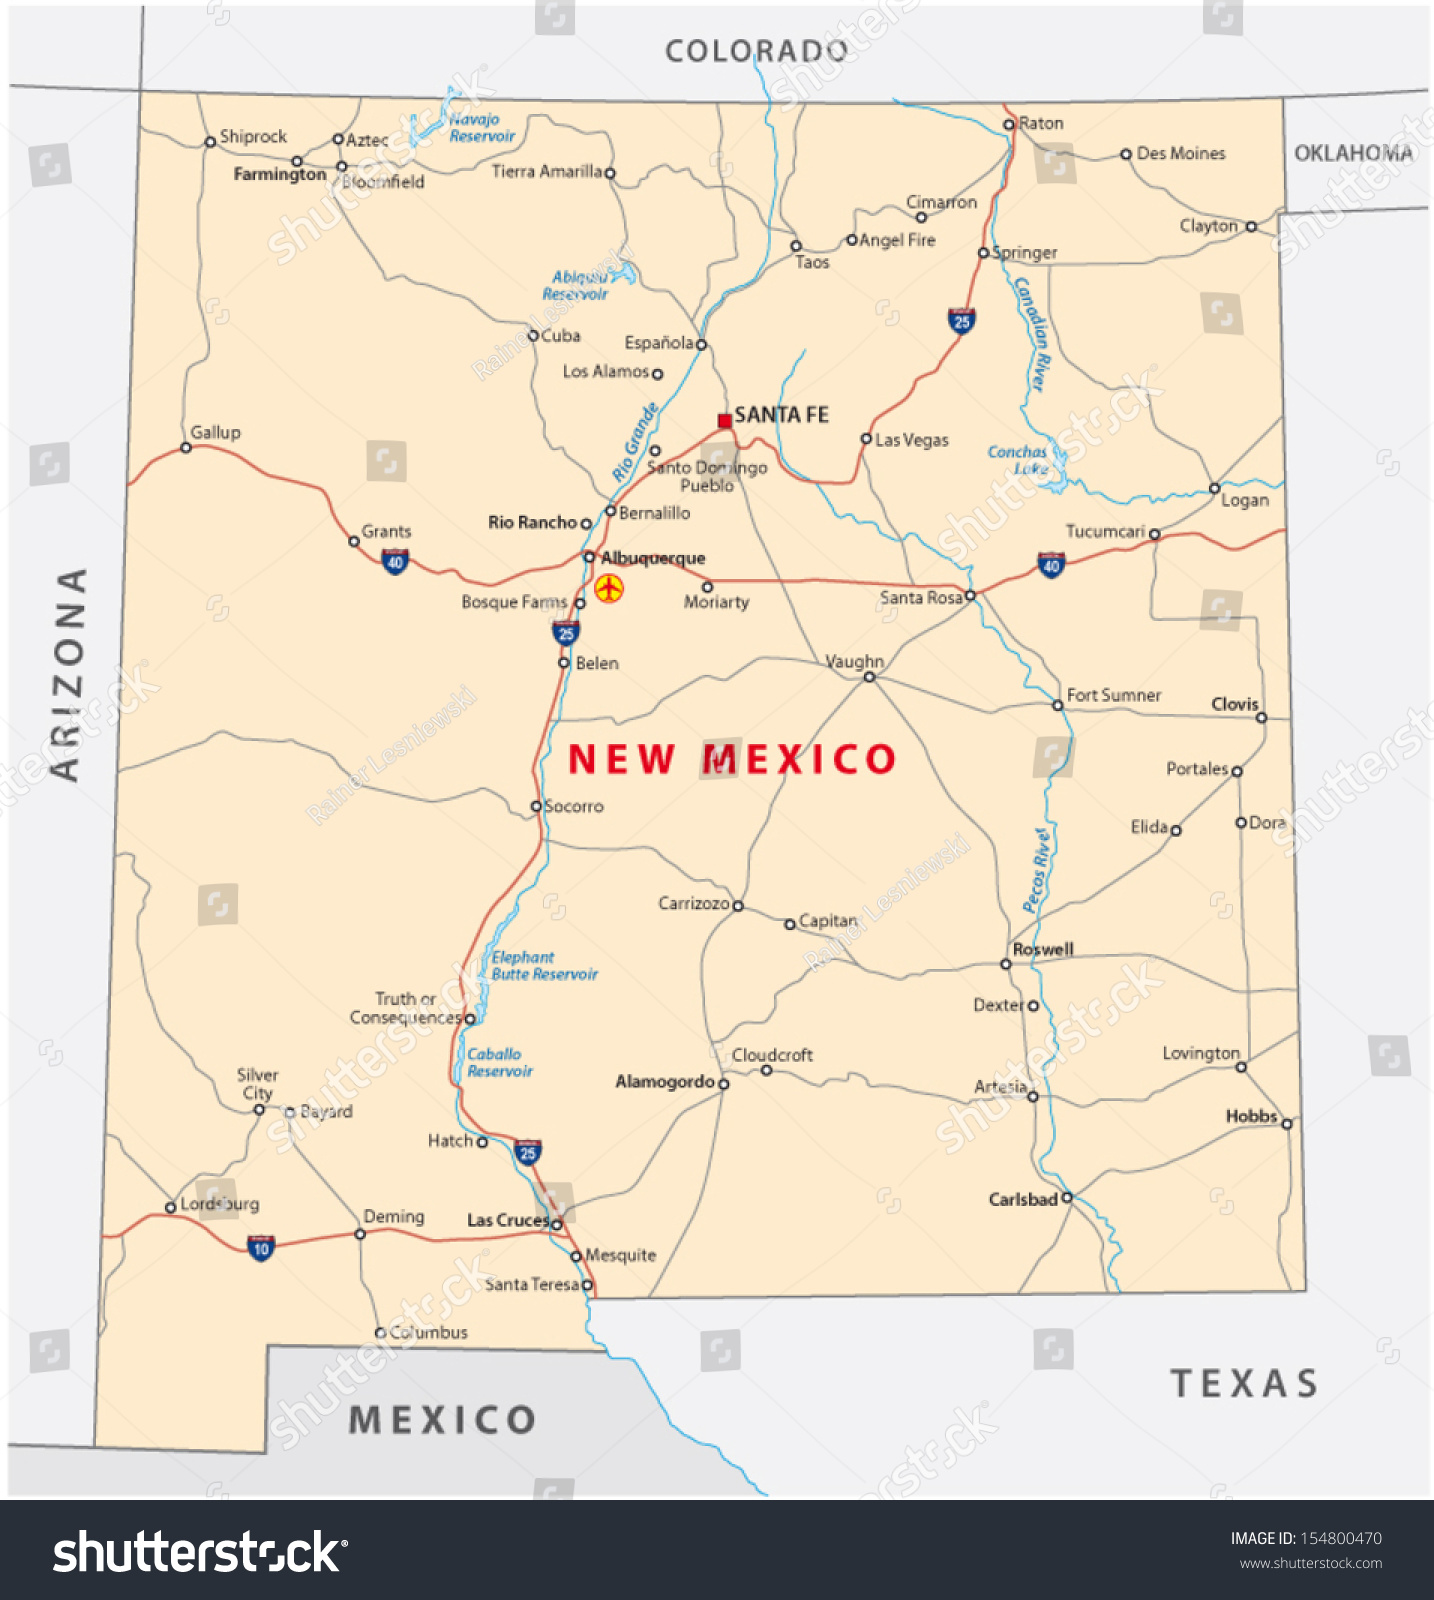 New Mexico Road Map Saddleback Map - Road map of new mexico